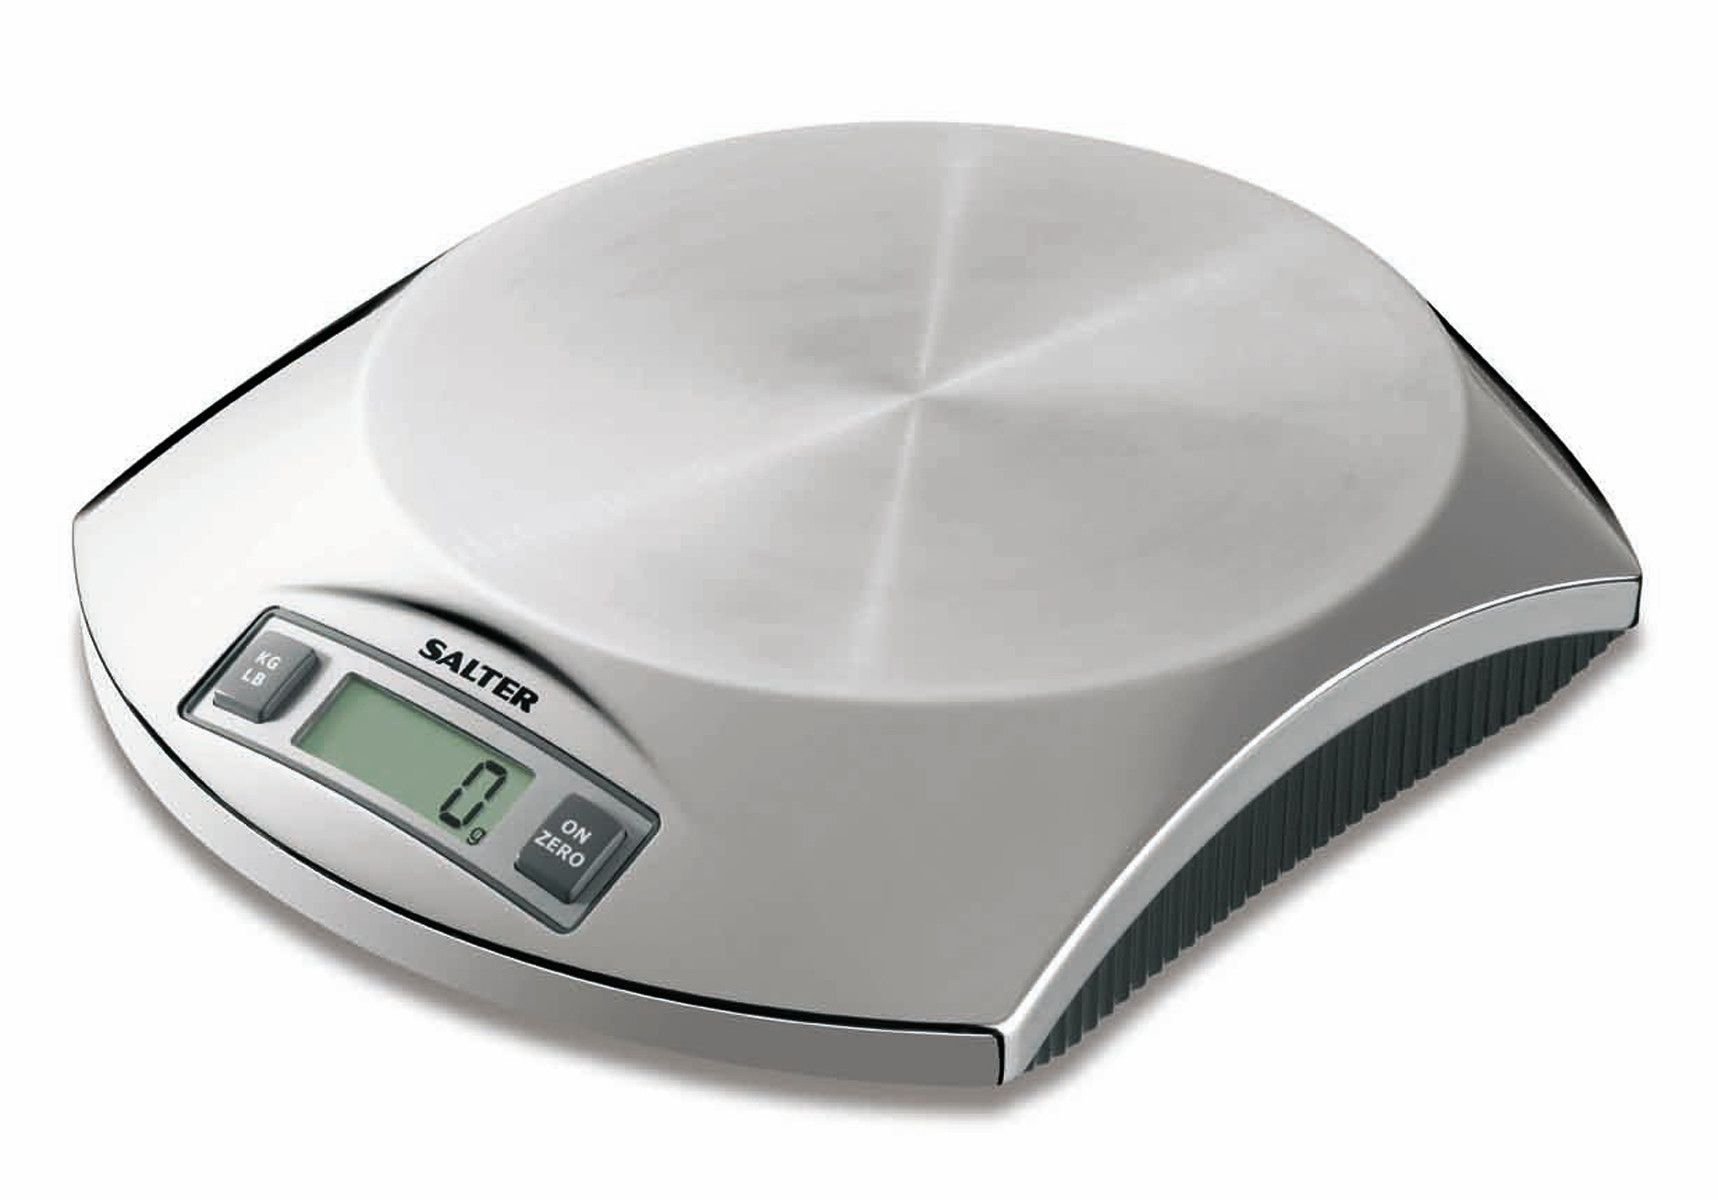 Salter Stainless Steel Electronic Kitchen Scale | Products | Pinterest